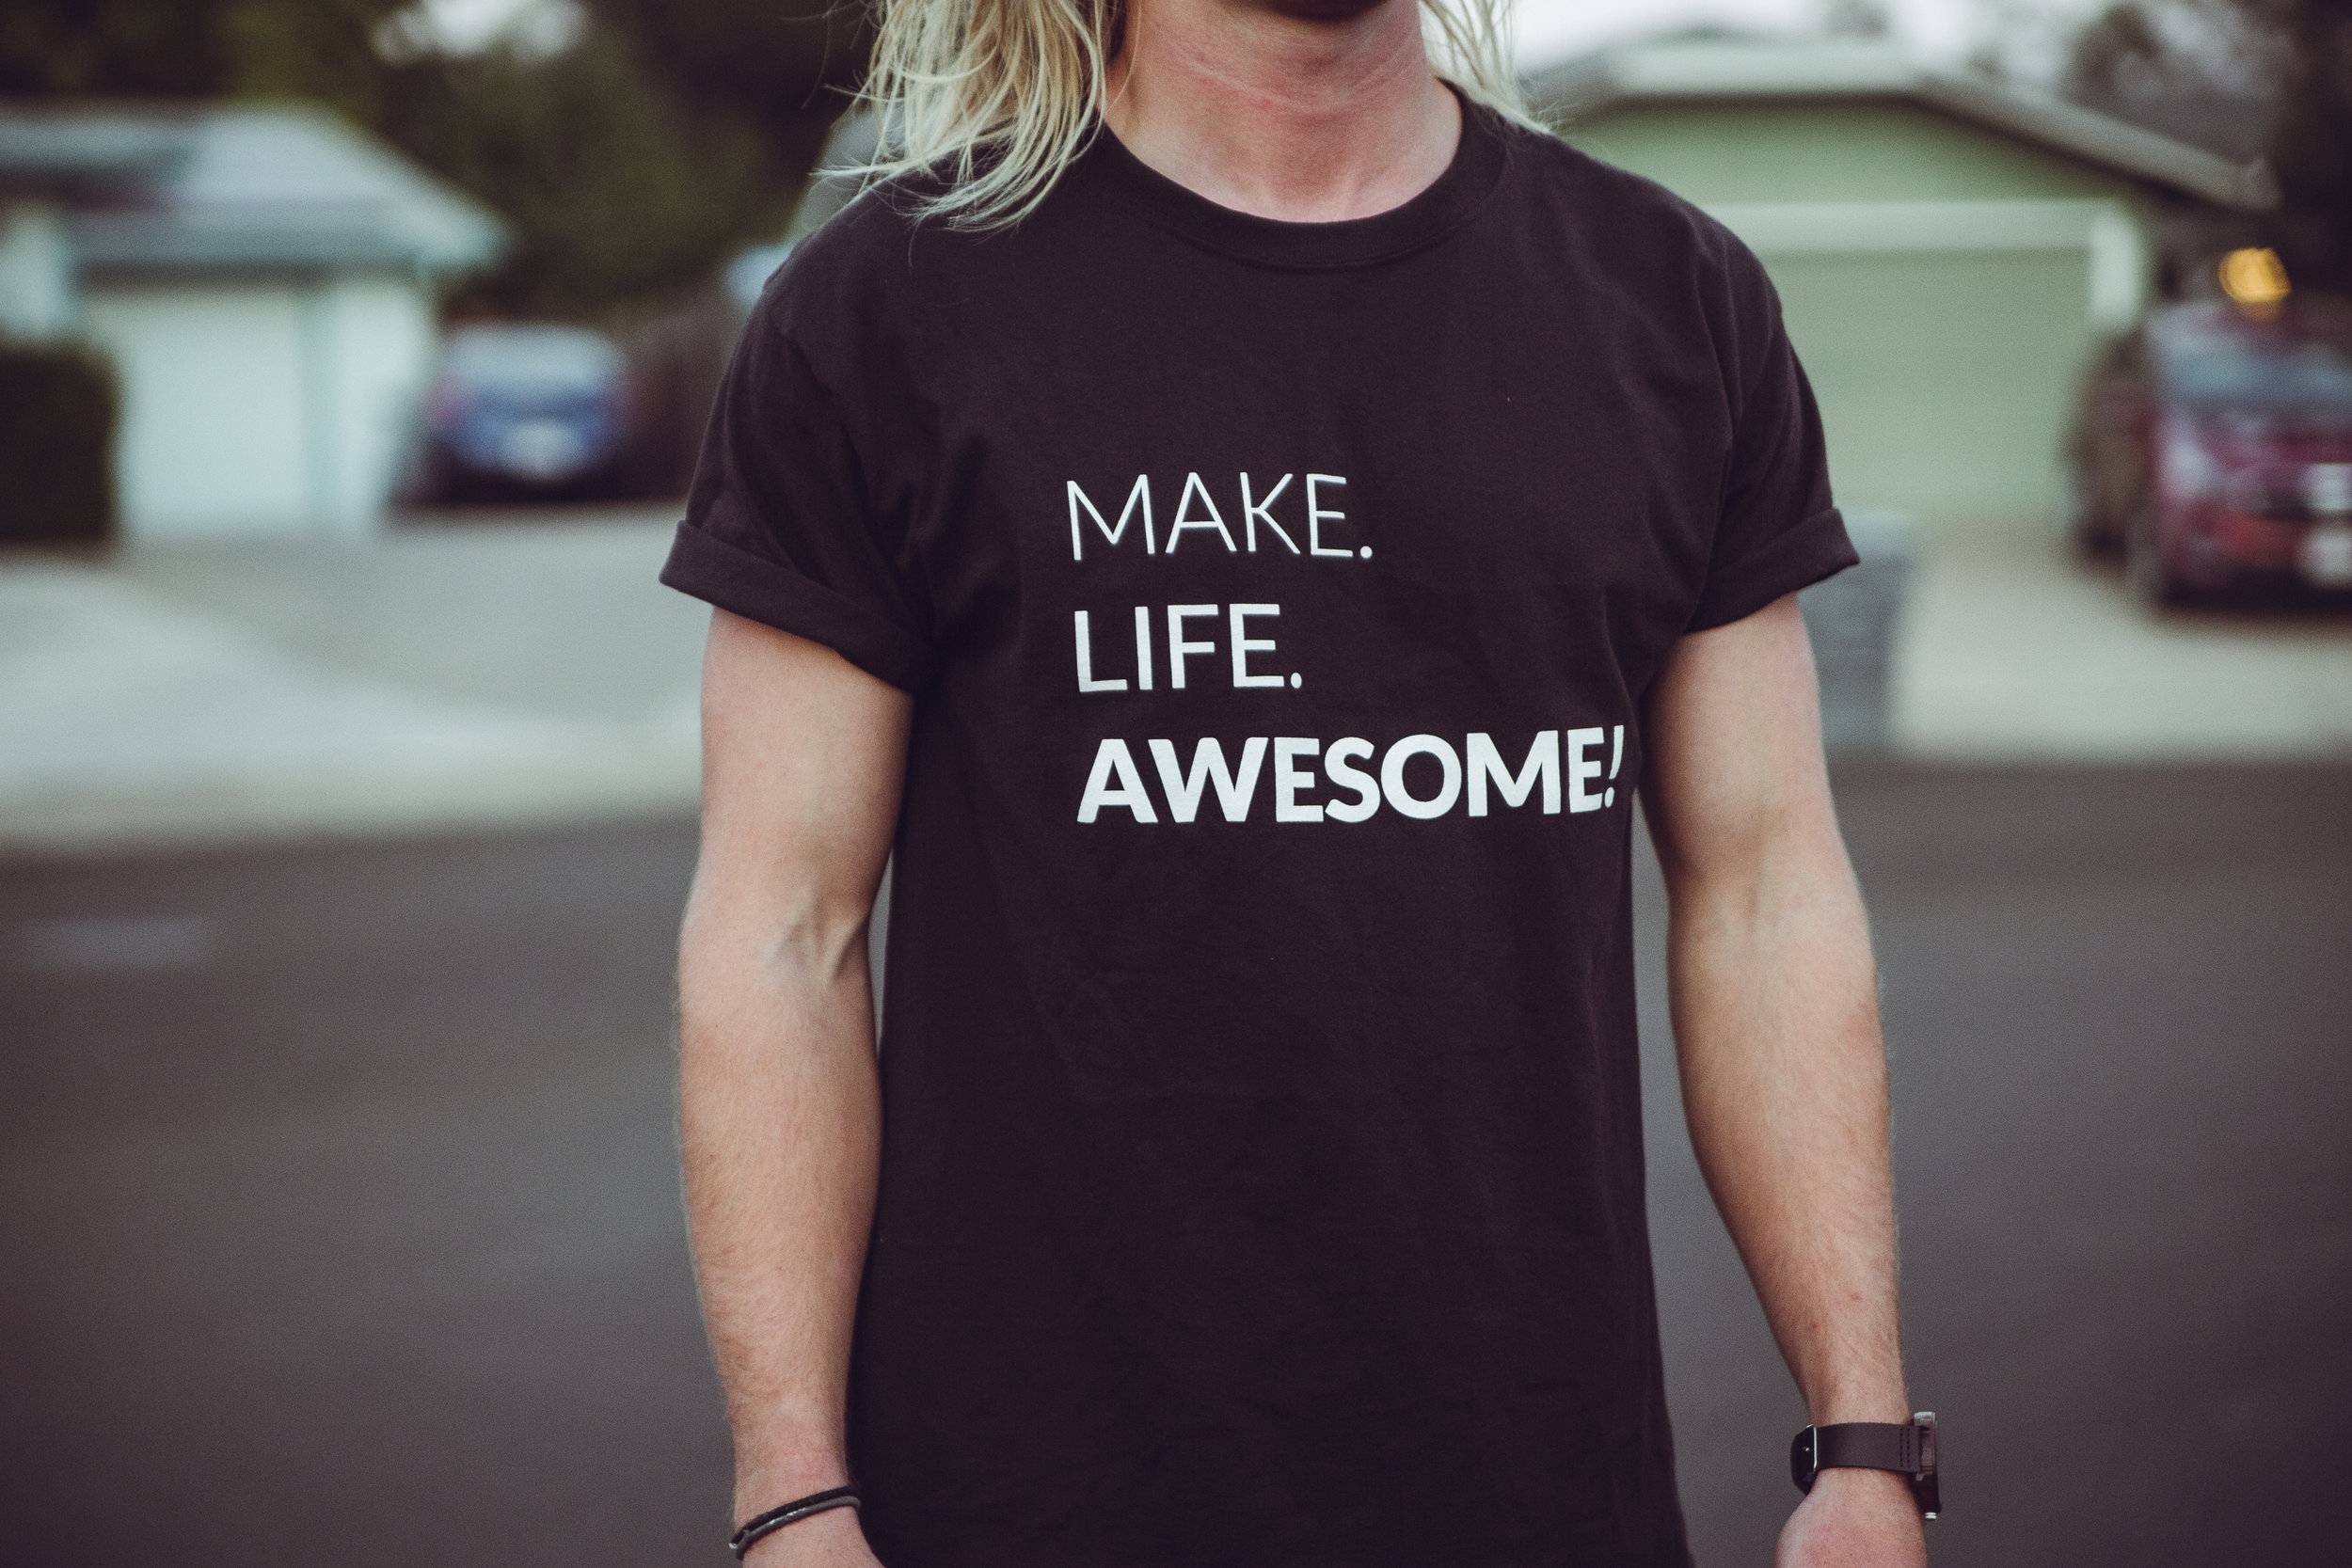 Make Life Awesome Tee - $20